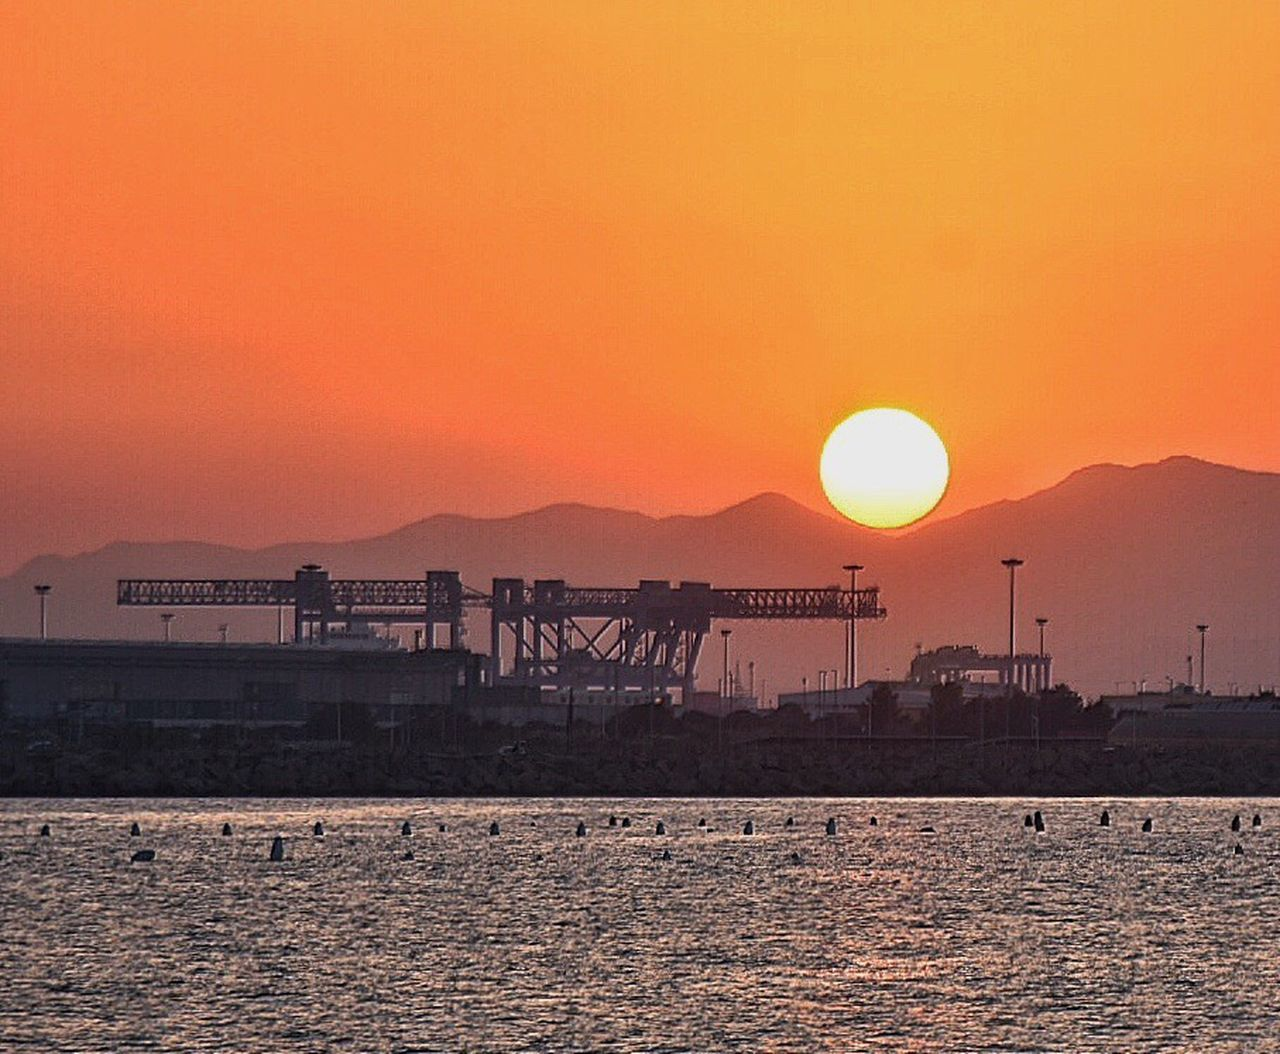 Sunset Water Sun Scenics Silhouette Waterfront Tranquil Scene Orange Color Tranquility Mountain Idyllic Sea Vacations Majestic Atmosphere Beauty In Nature Non-urban Scene Moody Sky Industry Calm Mare Cagliari Water Reflections Cagliari Urban City Sardinia Sardegna Italy